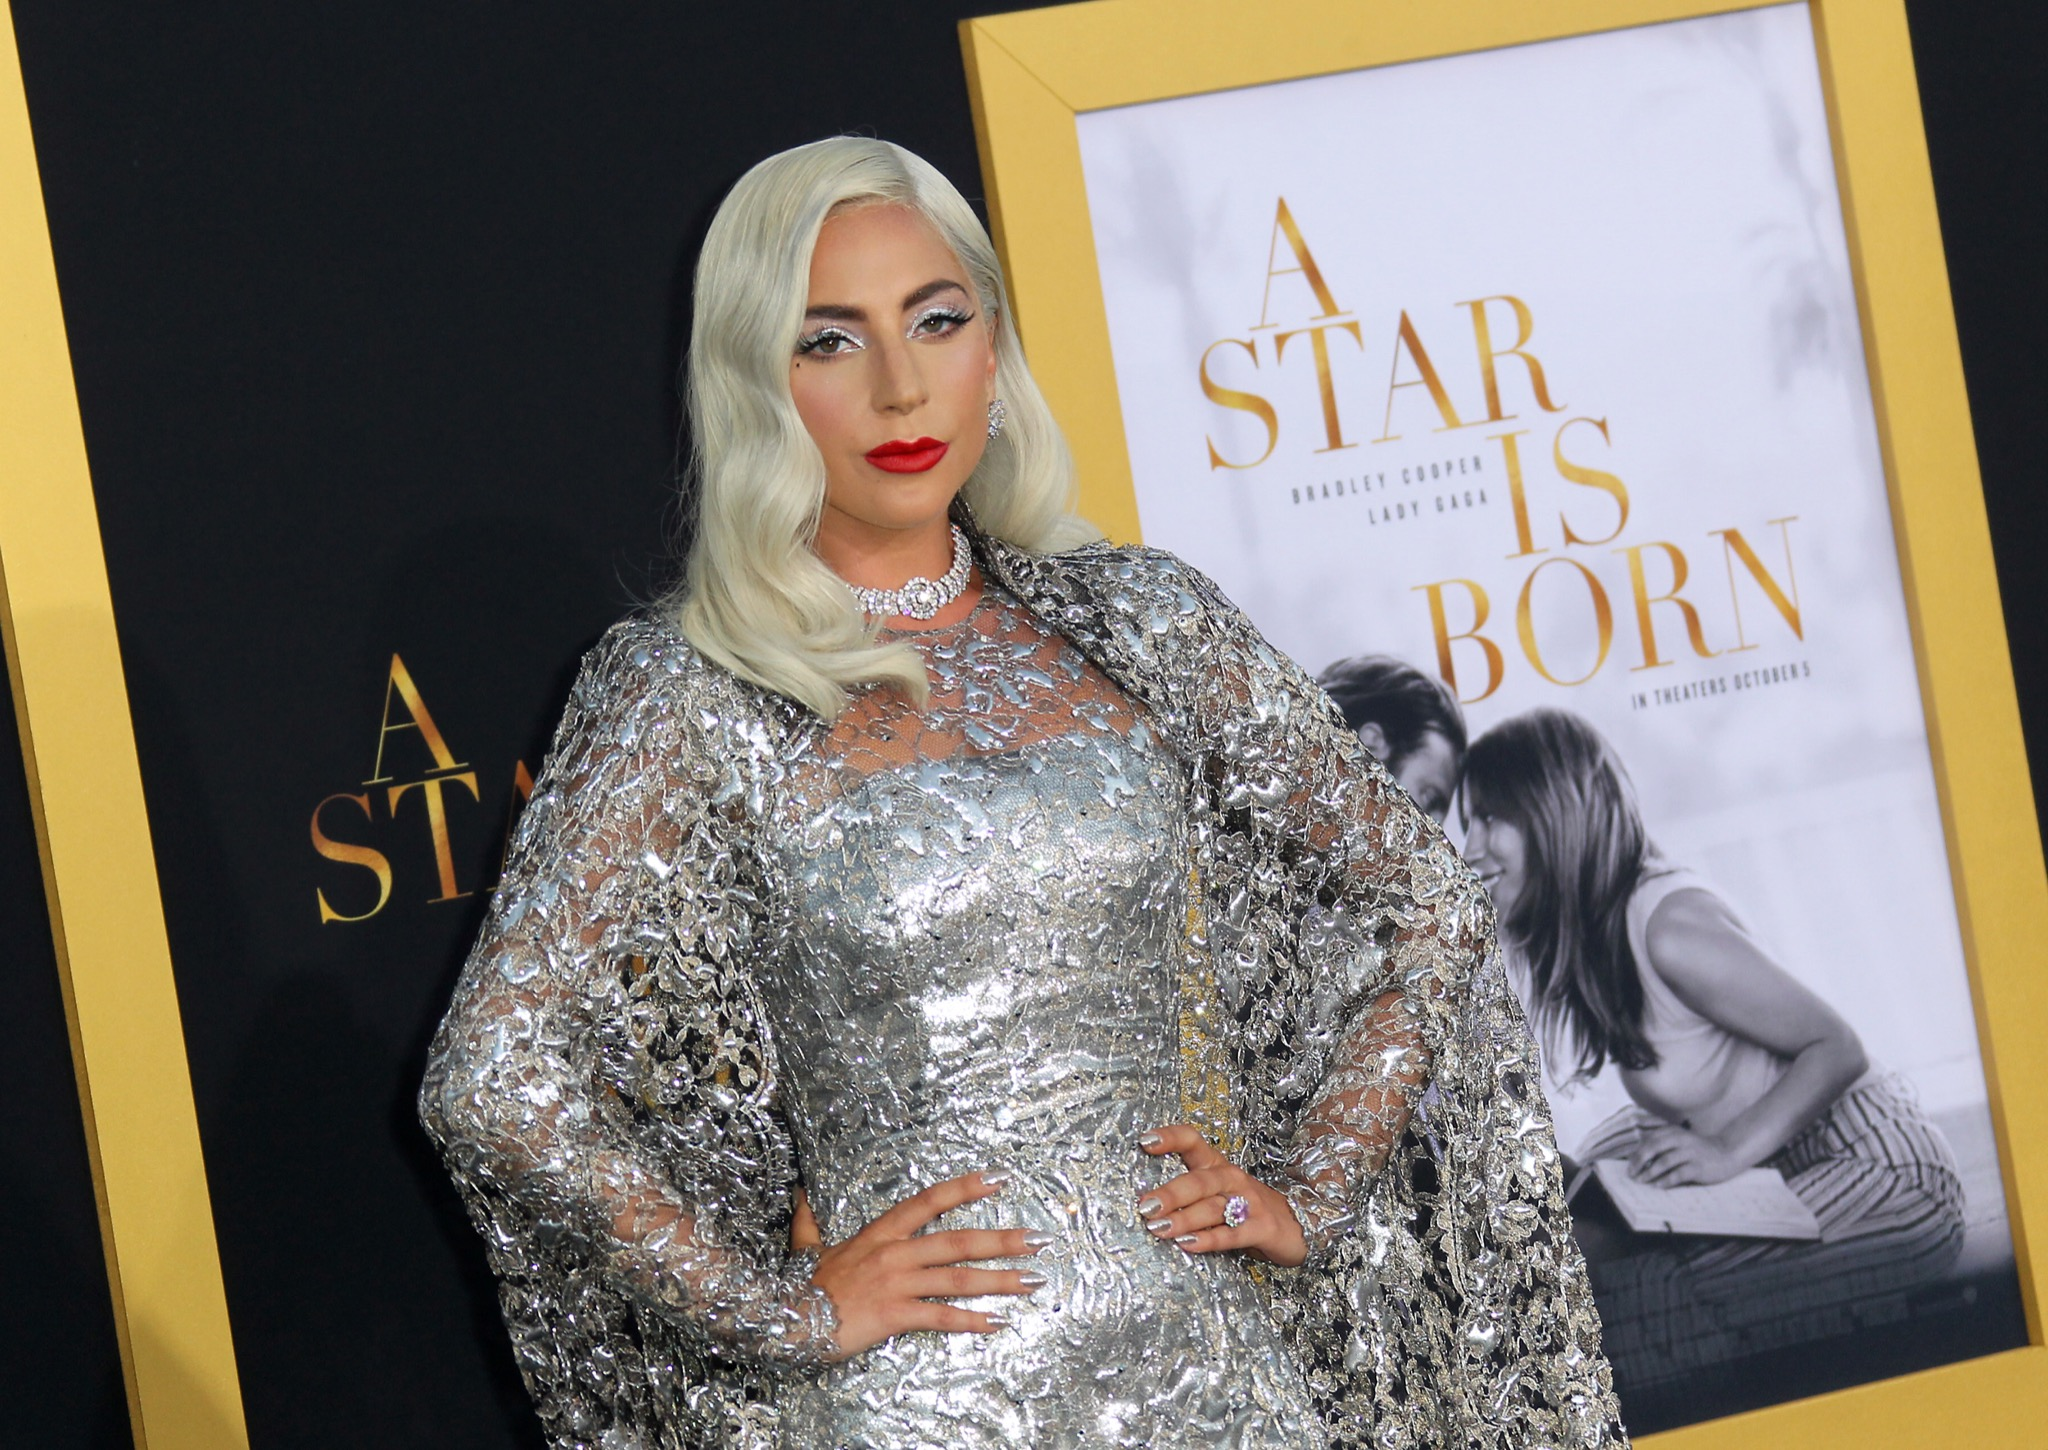 Lady now dating is gaga who What Really